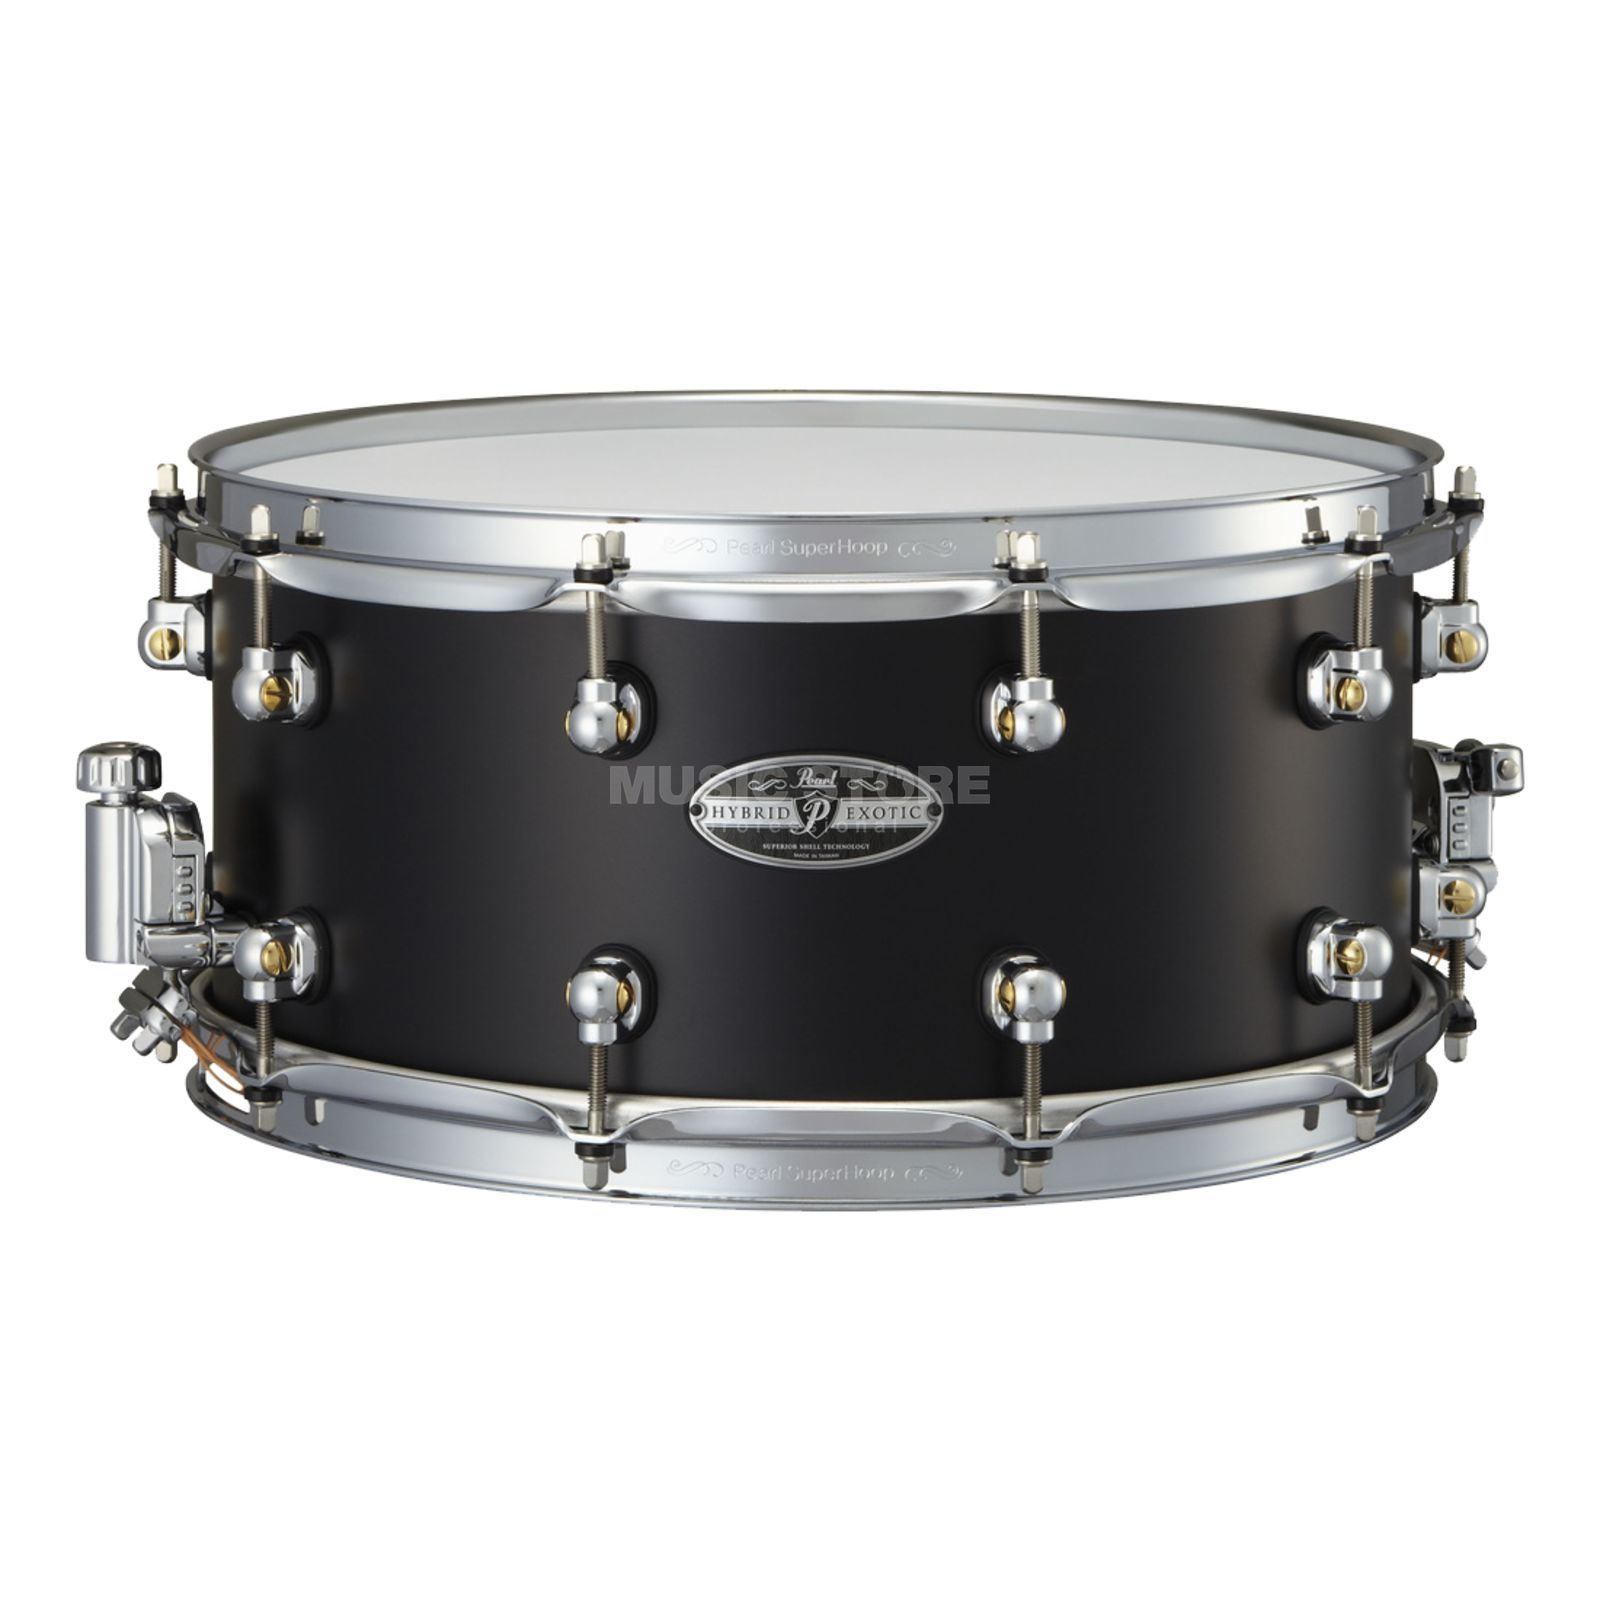 "Pearl Hybrid Exotic Snare 14""x6.5"", HEAL-1465, Cast Aluminum Produktbillede"